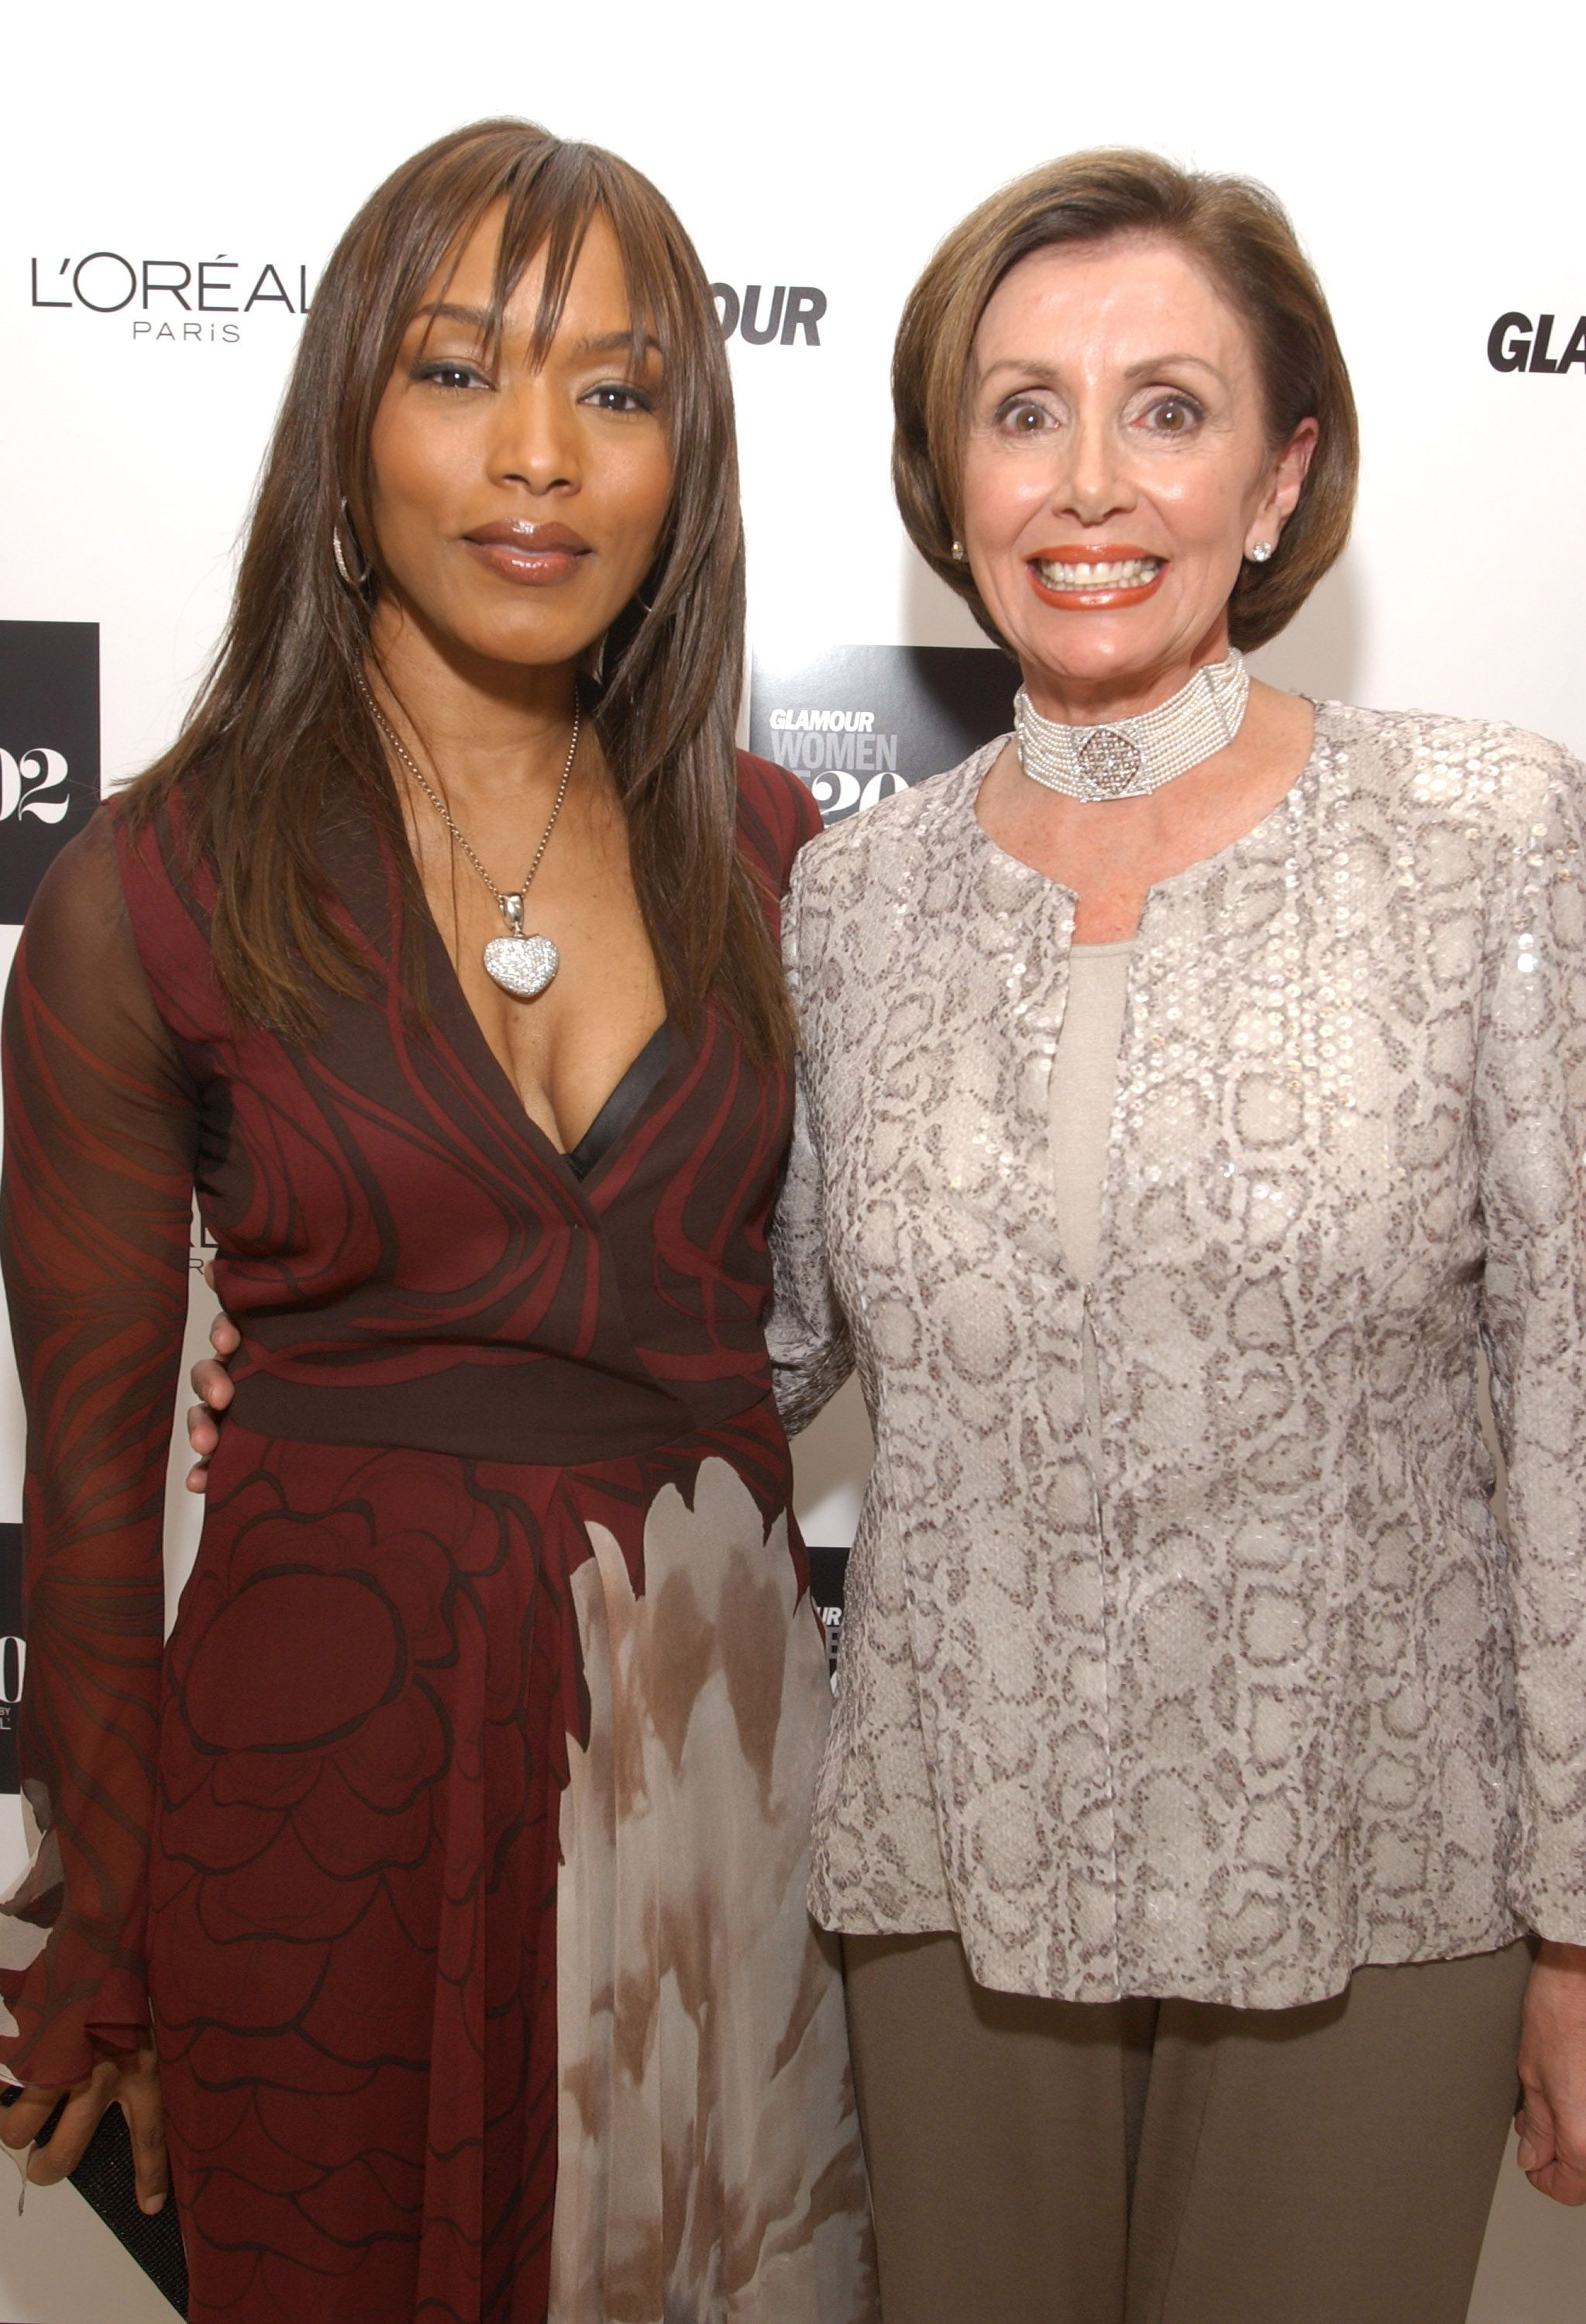 Pelosi with Angela Bassett at the Glamour Women of the Year Awards in New York.